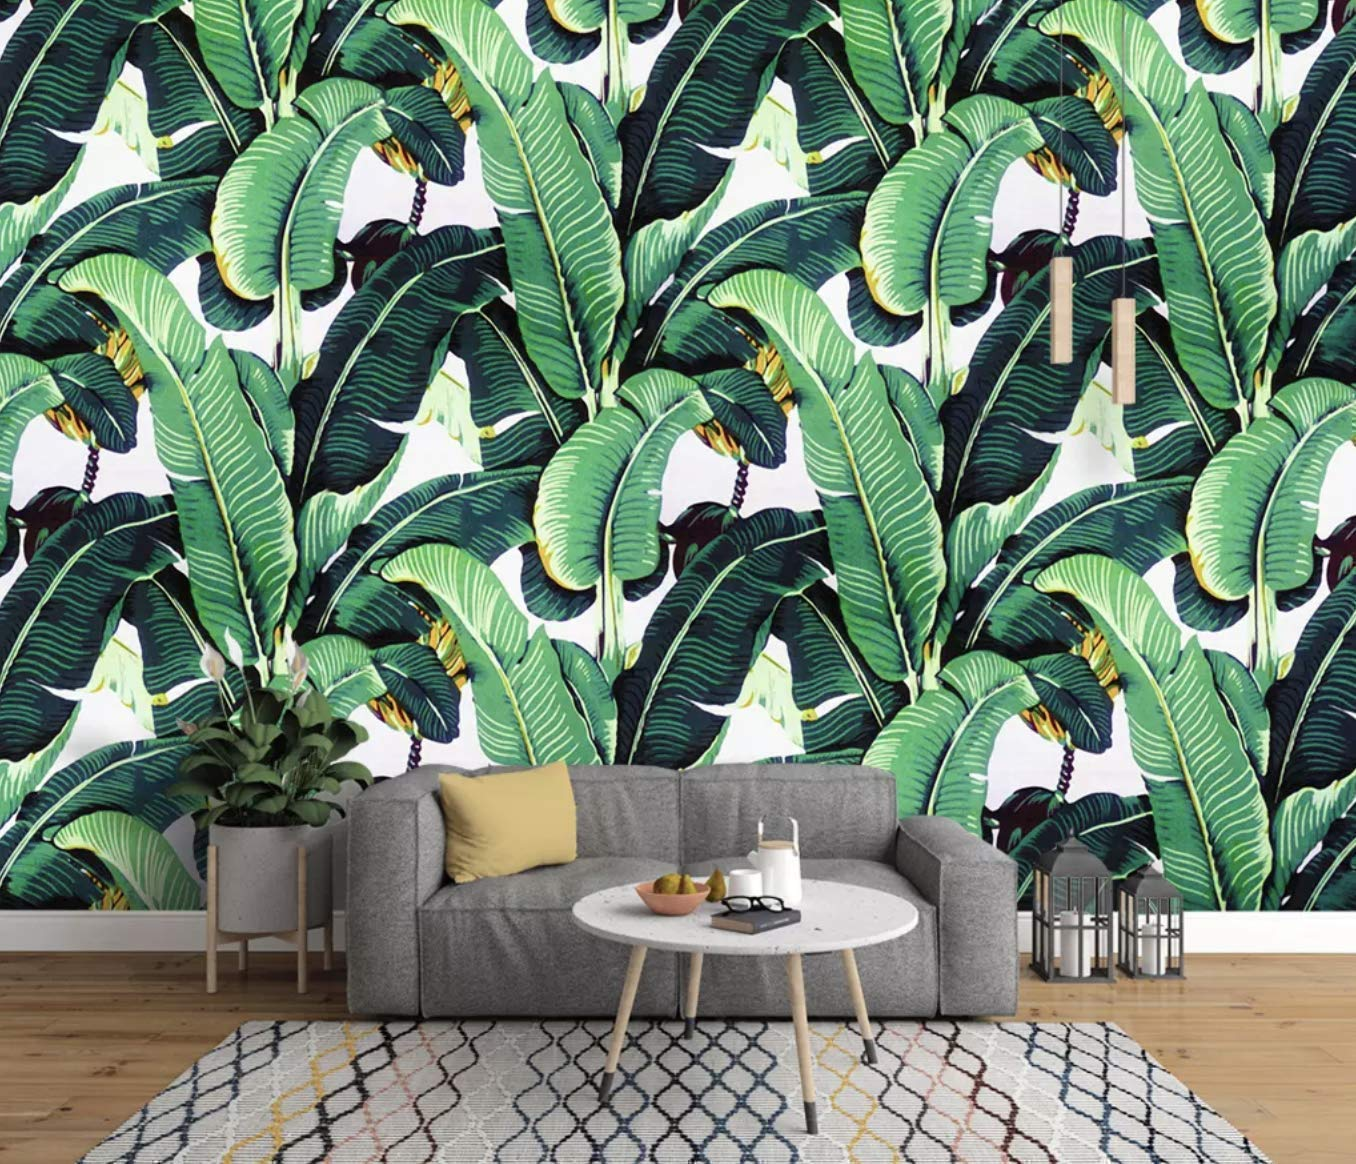 Murwall Banana Leaf Wallpaper Tropical Leaves Wall Mural Natural Pattern on girly home design, geometric homes design, natural cafe designs, female home design, royal home design, copper home design, serene home design, cream home design, natural contemporary, practical home design, slow home design, bright home design, gray home design, terracotta home design, dark home design, worst home design, blue home design, black home design, natural room designs, historical home design,